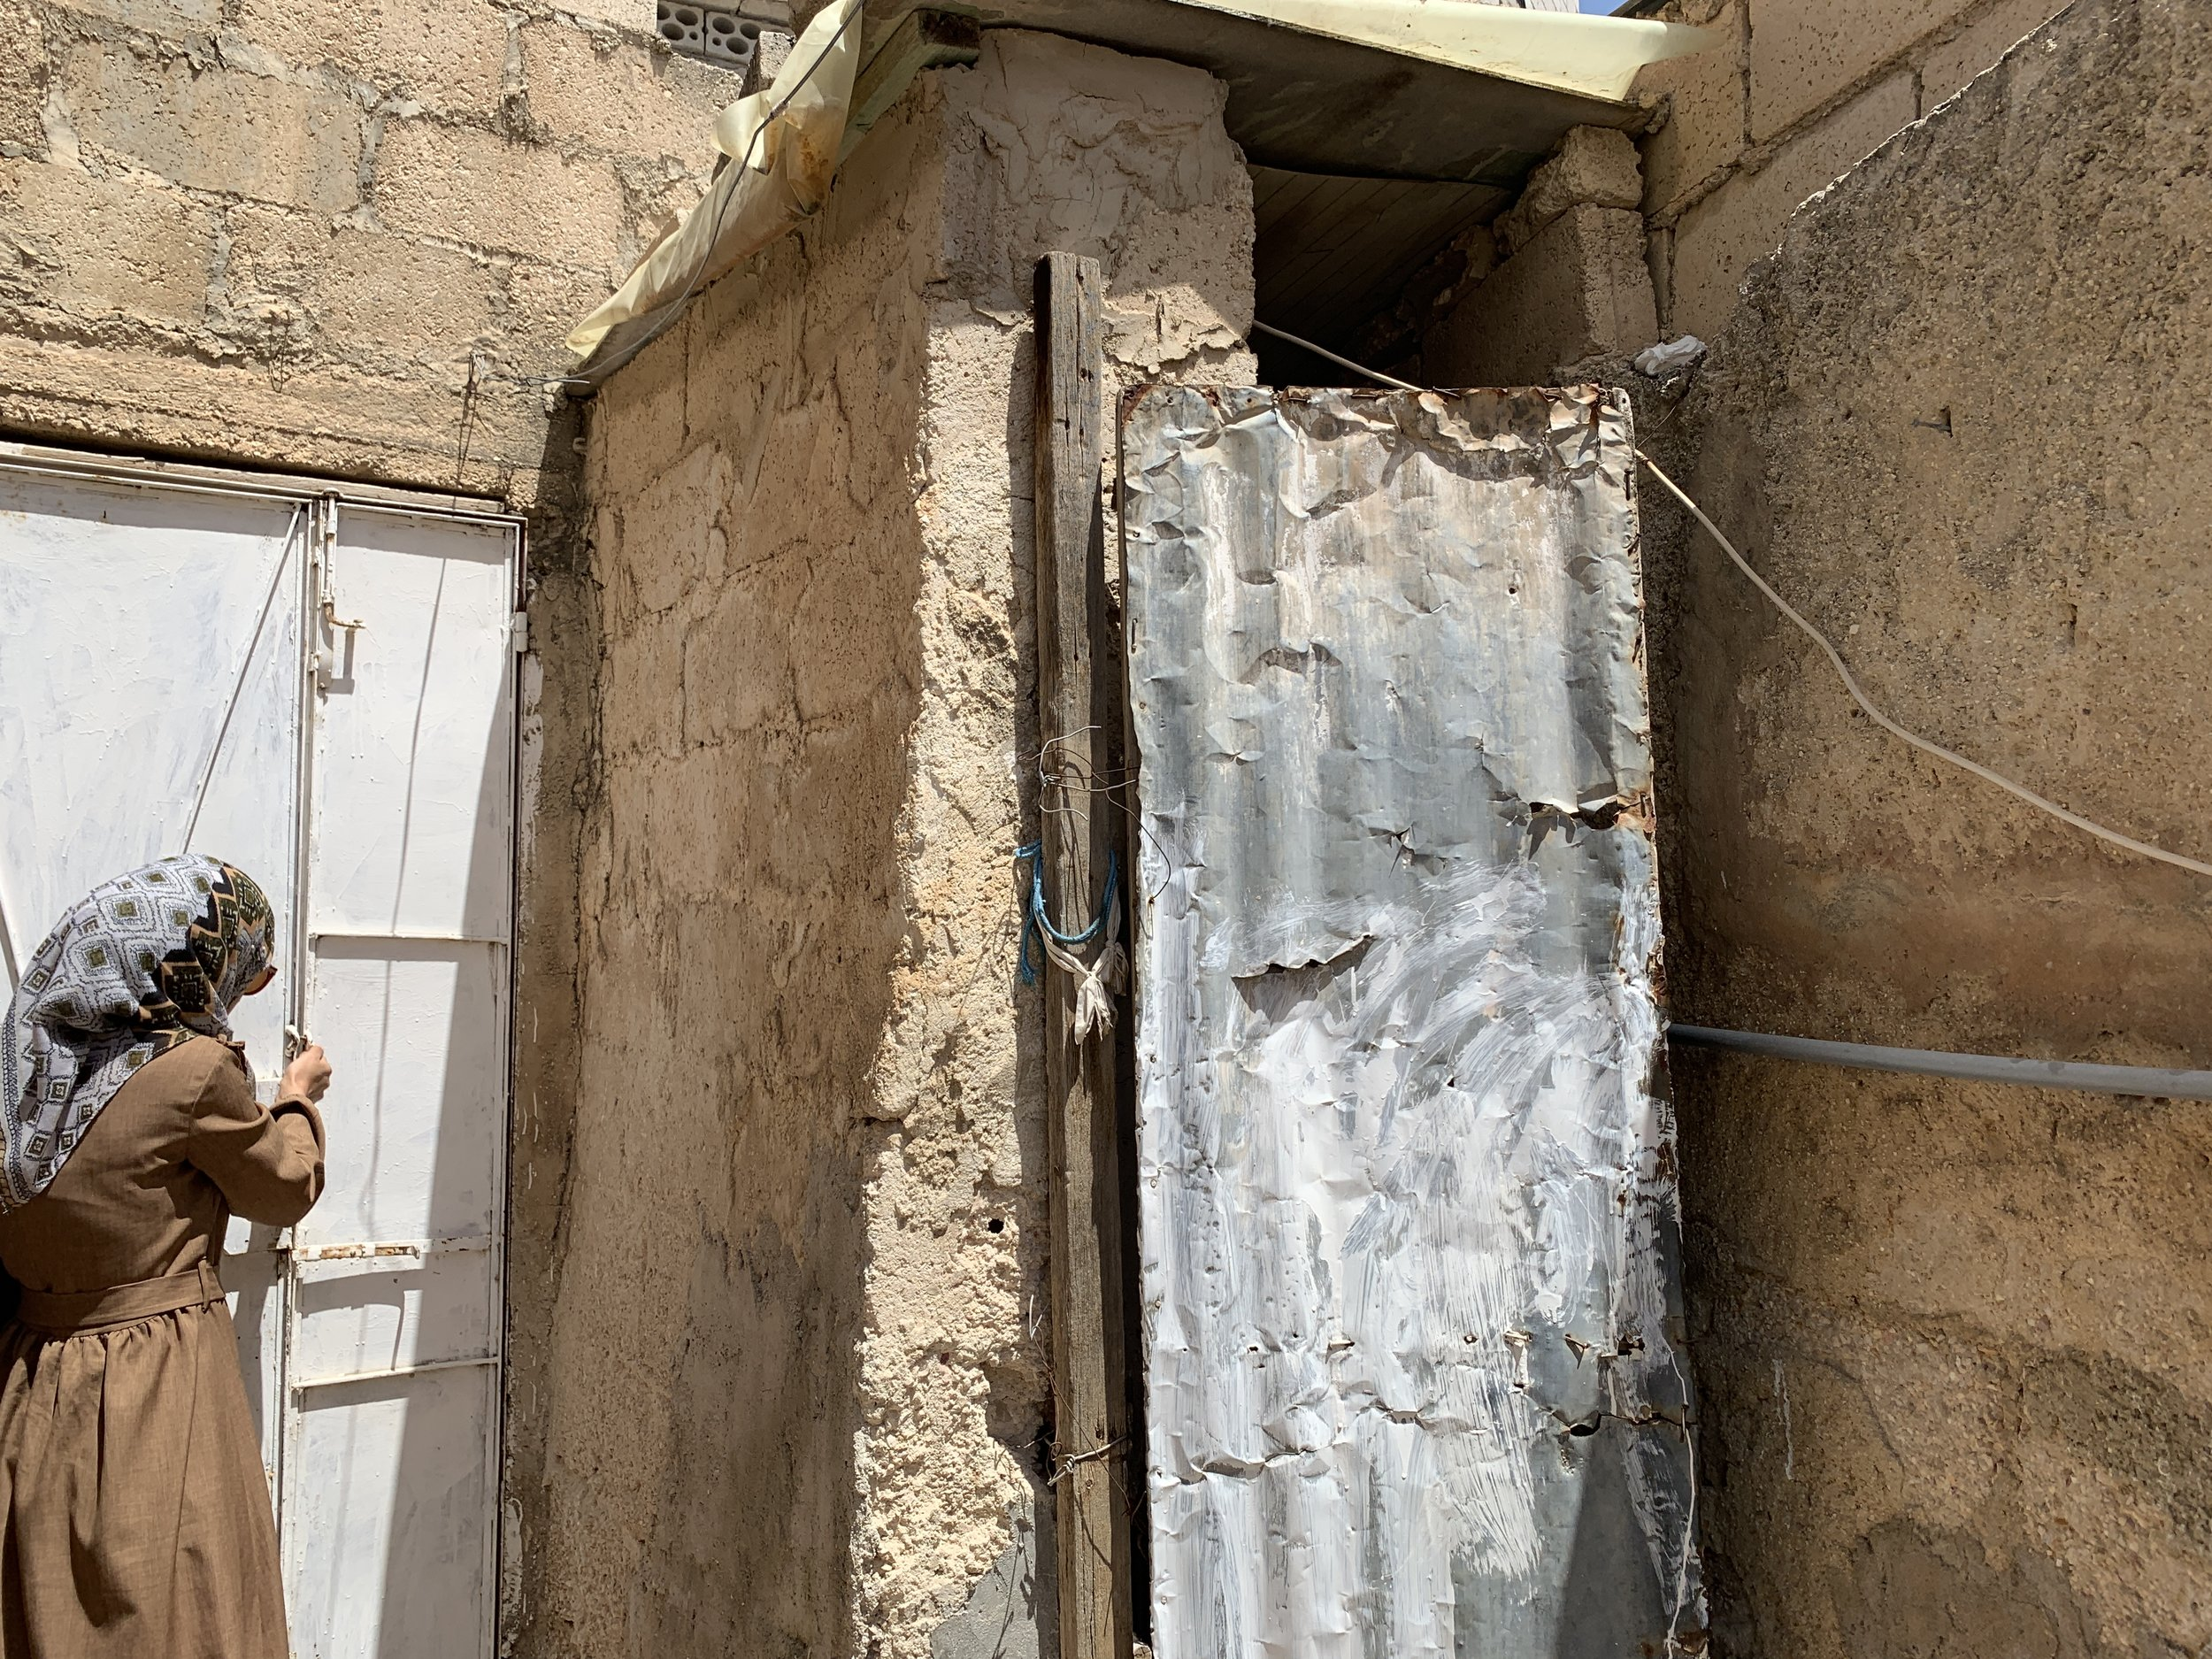 Fixing doors - Helping people with privacy by installing new doors